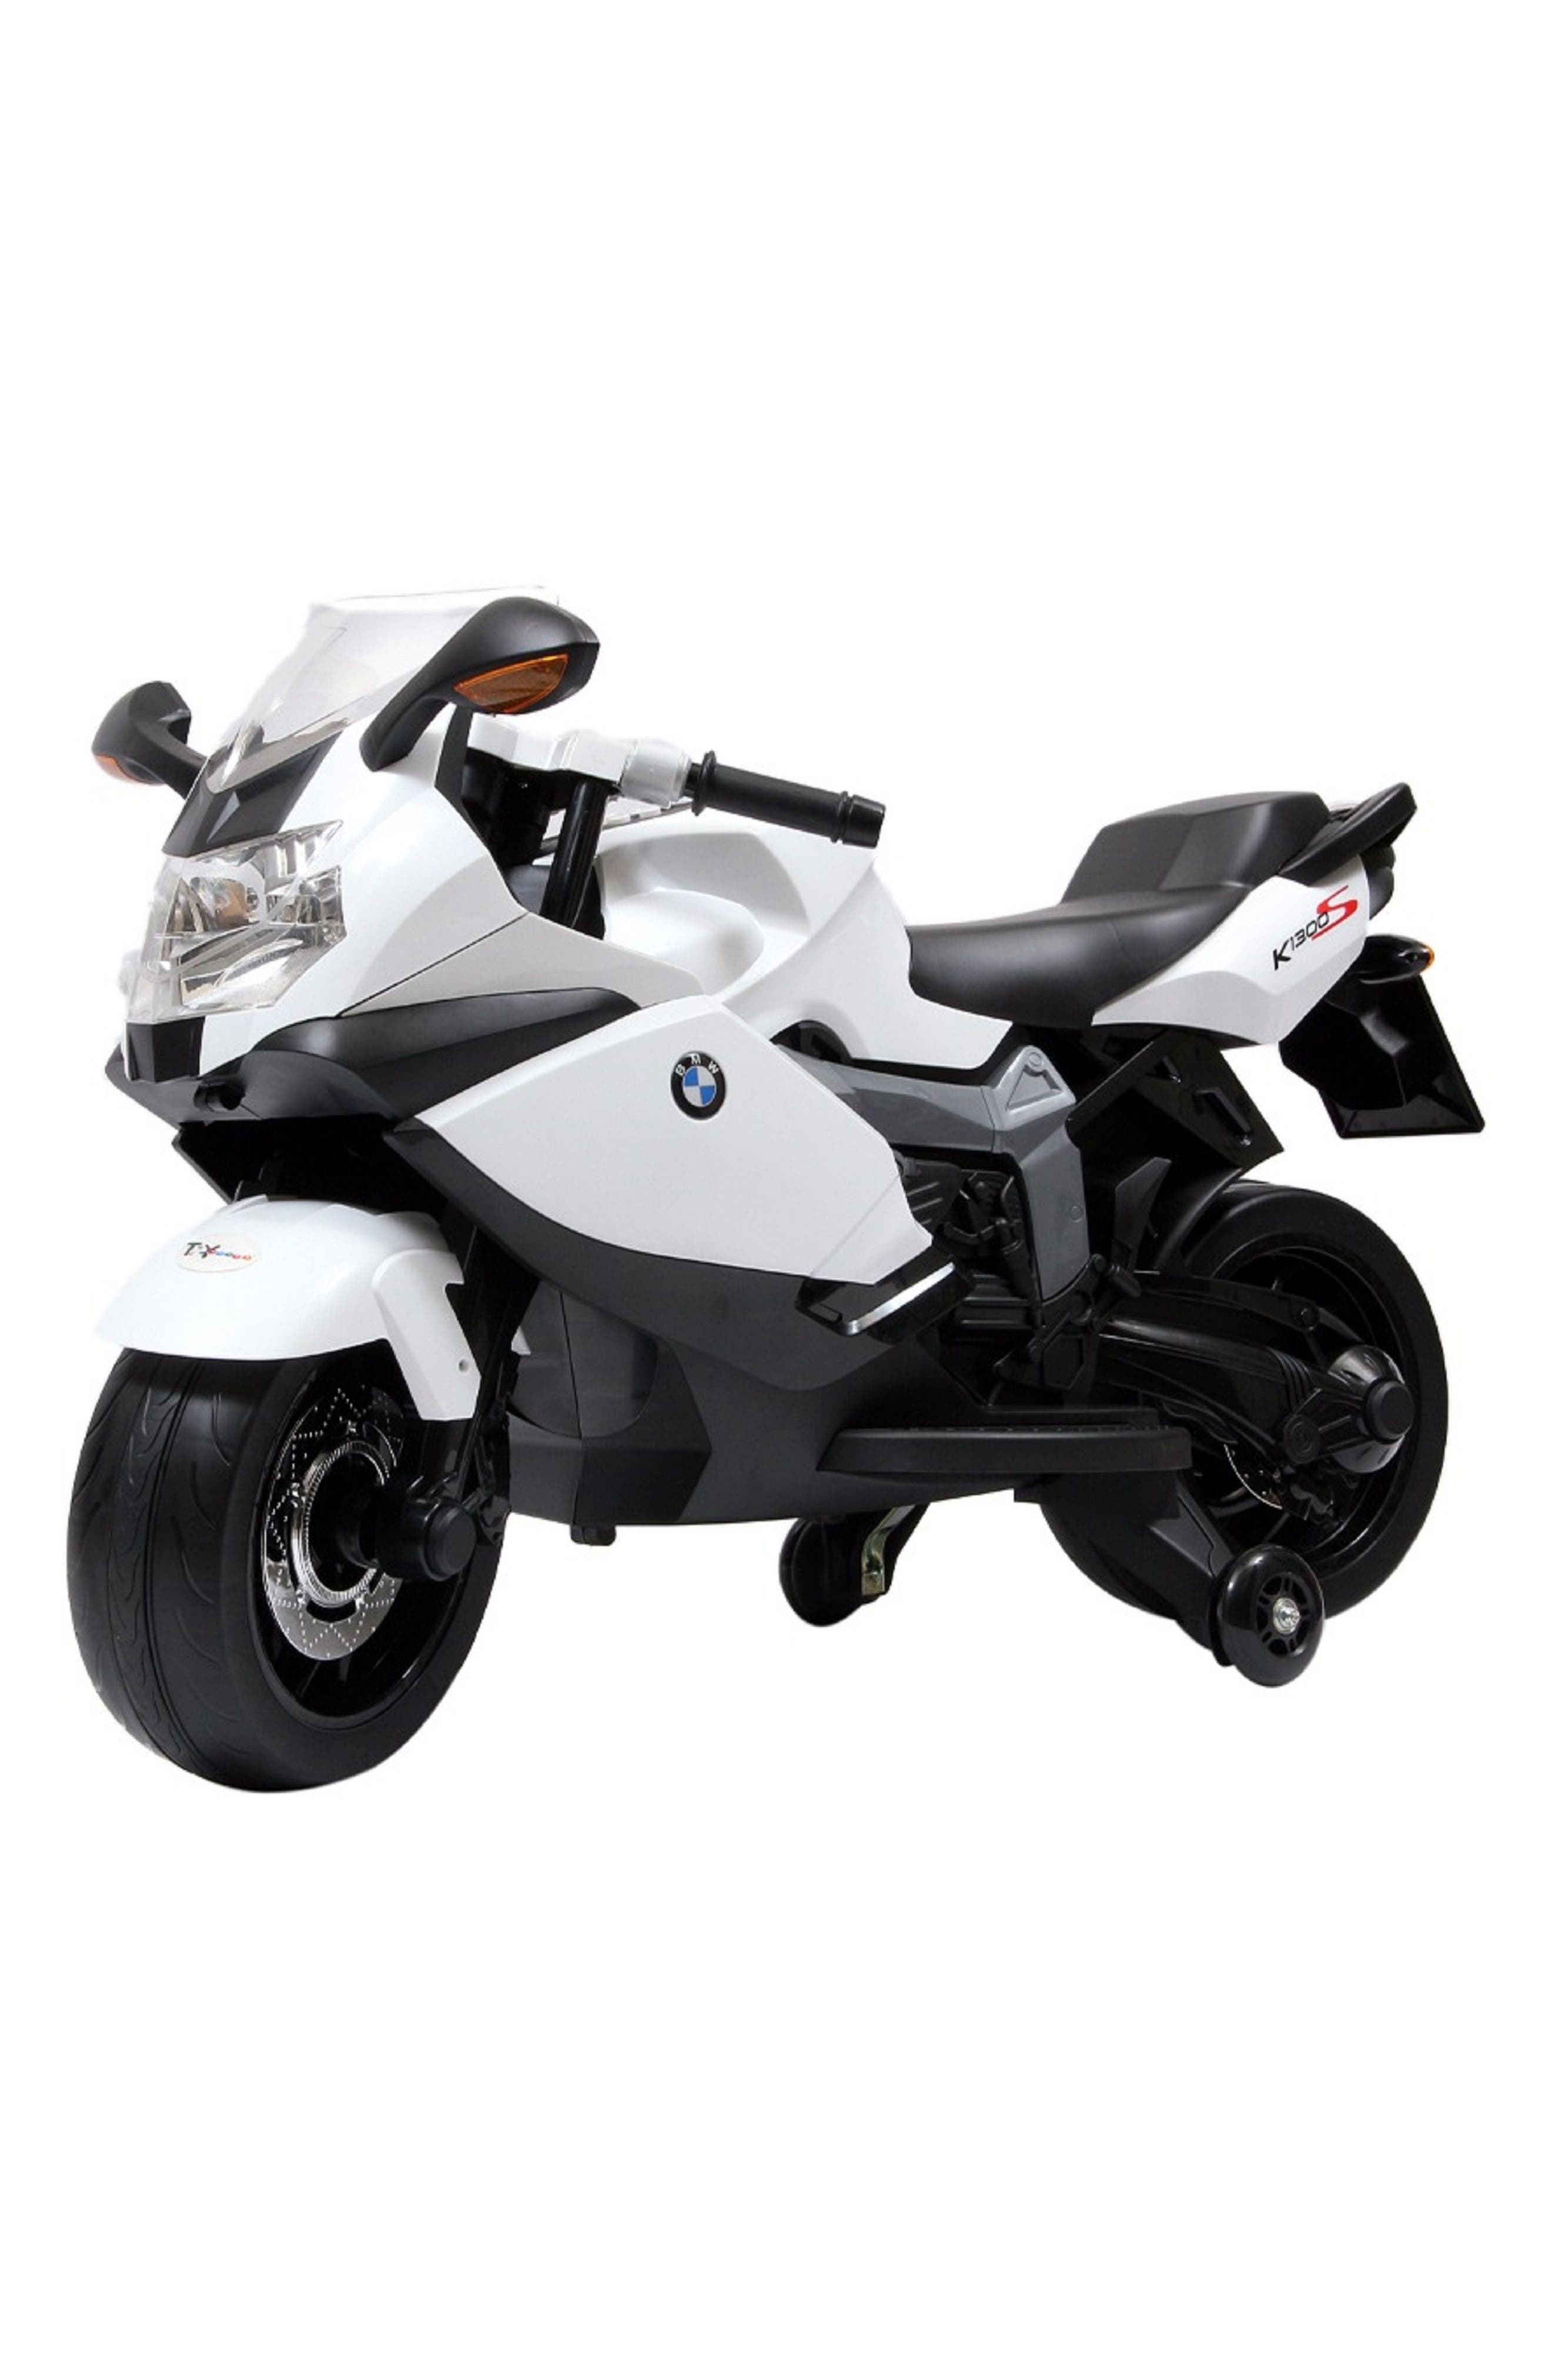 BMW Ride-On Toy Motorcycle,                             Main thumbnail 1, color,                             WHITE